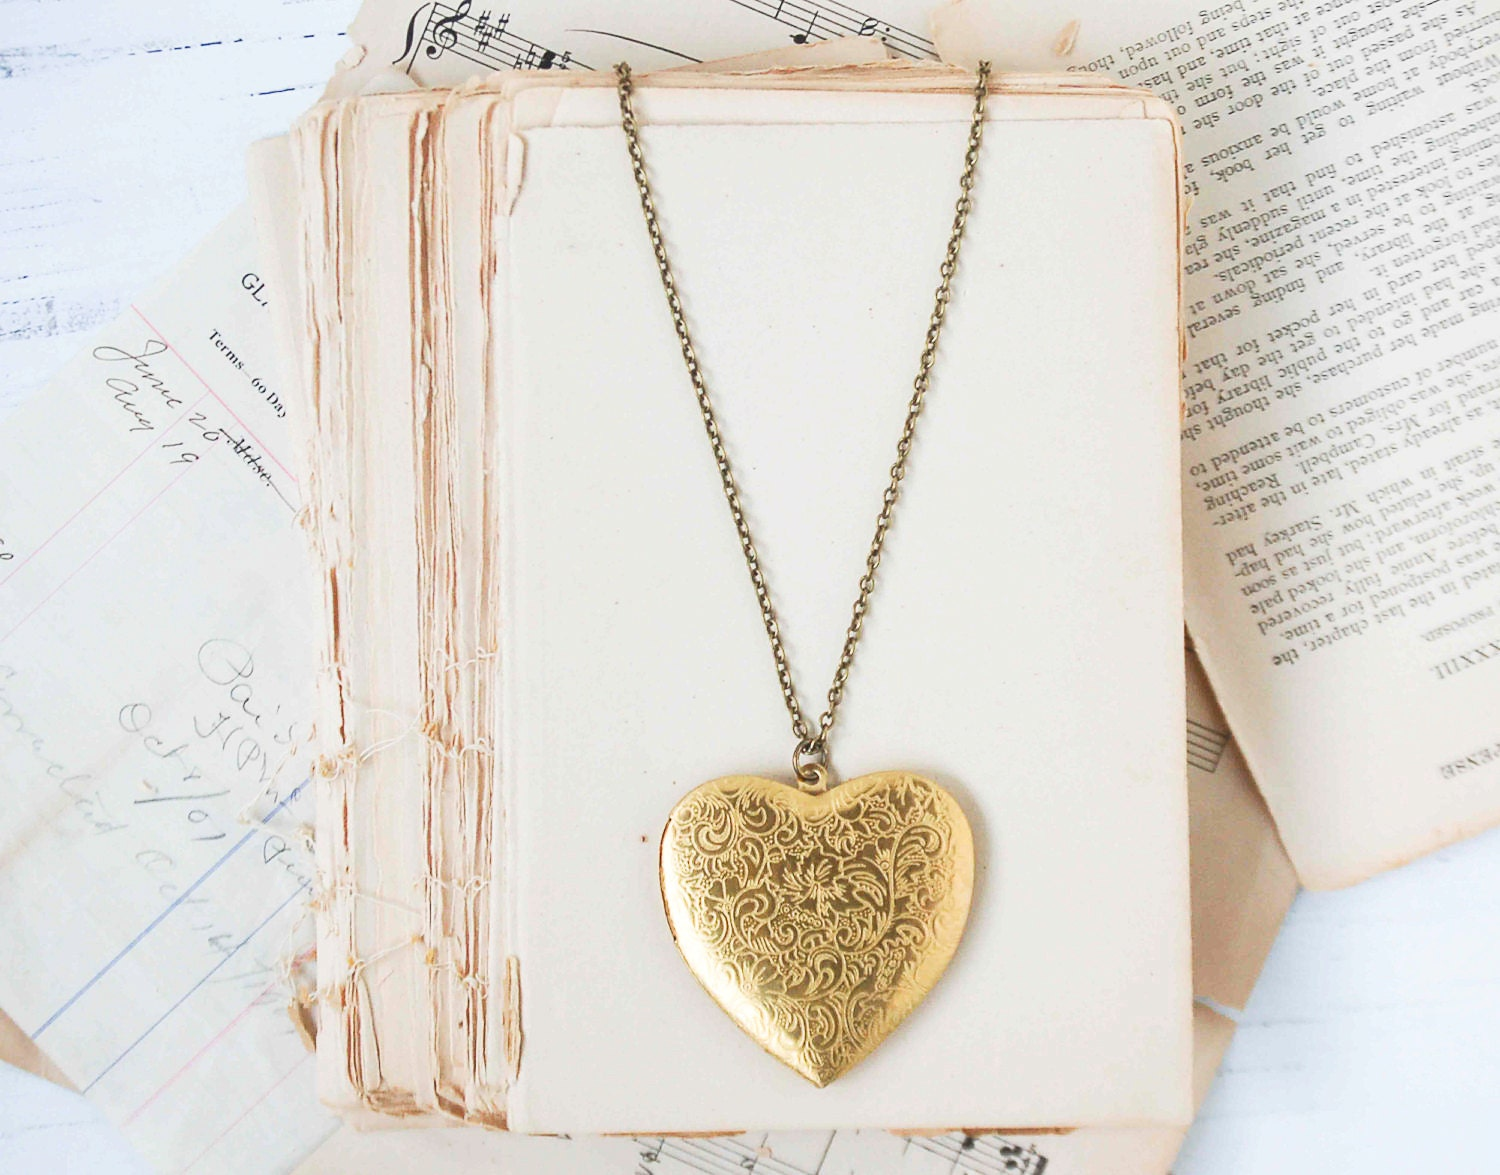 myshoplah alphabet with chain letmeenaecc ps men pendant for letter women locket gold meenaz pdp heart and s jewmeenaz lockets plated beautiful